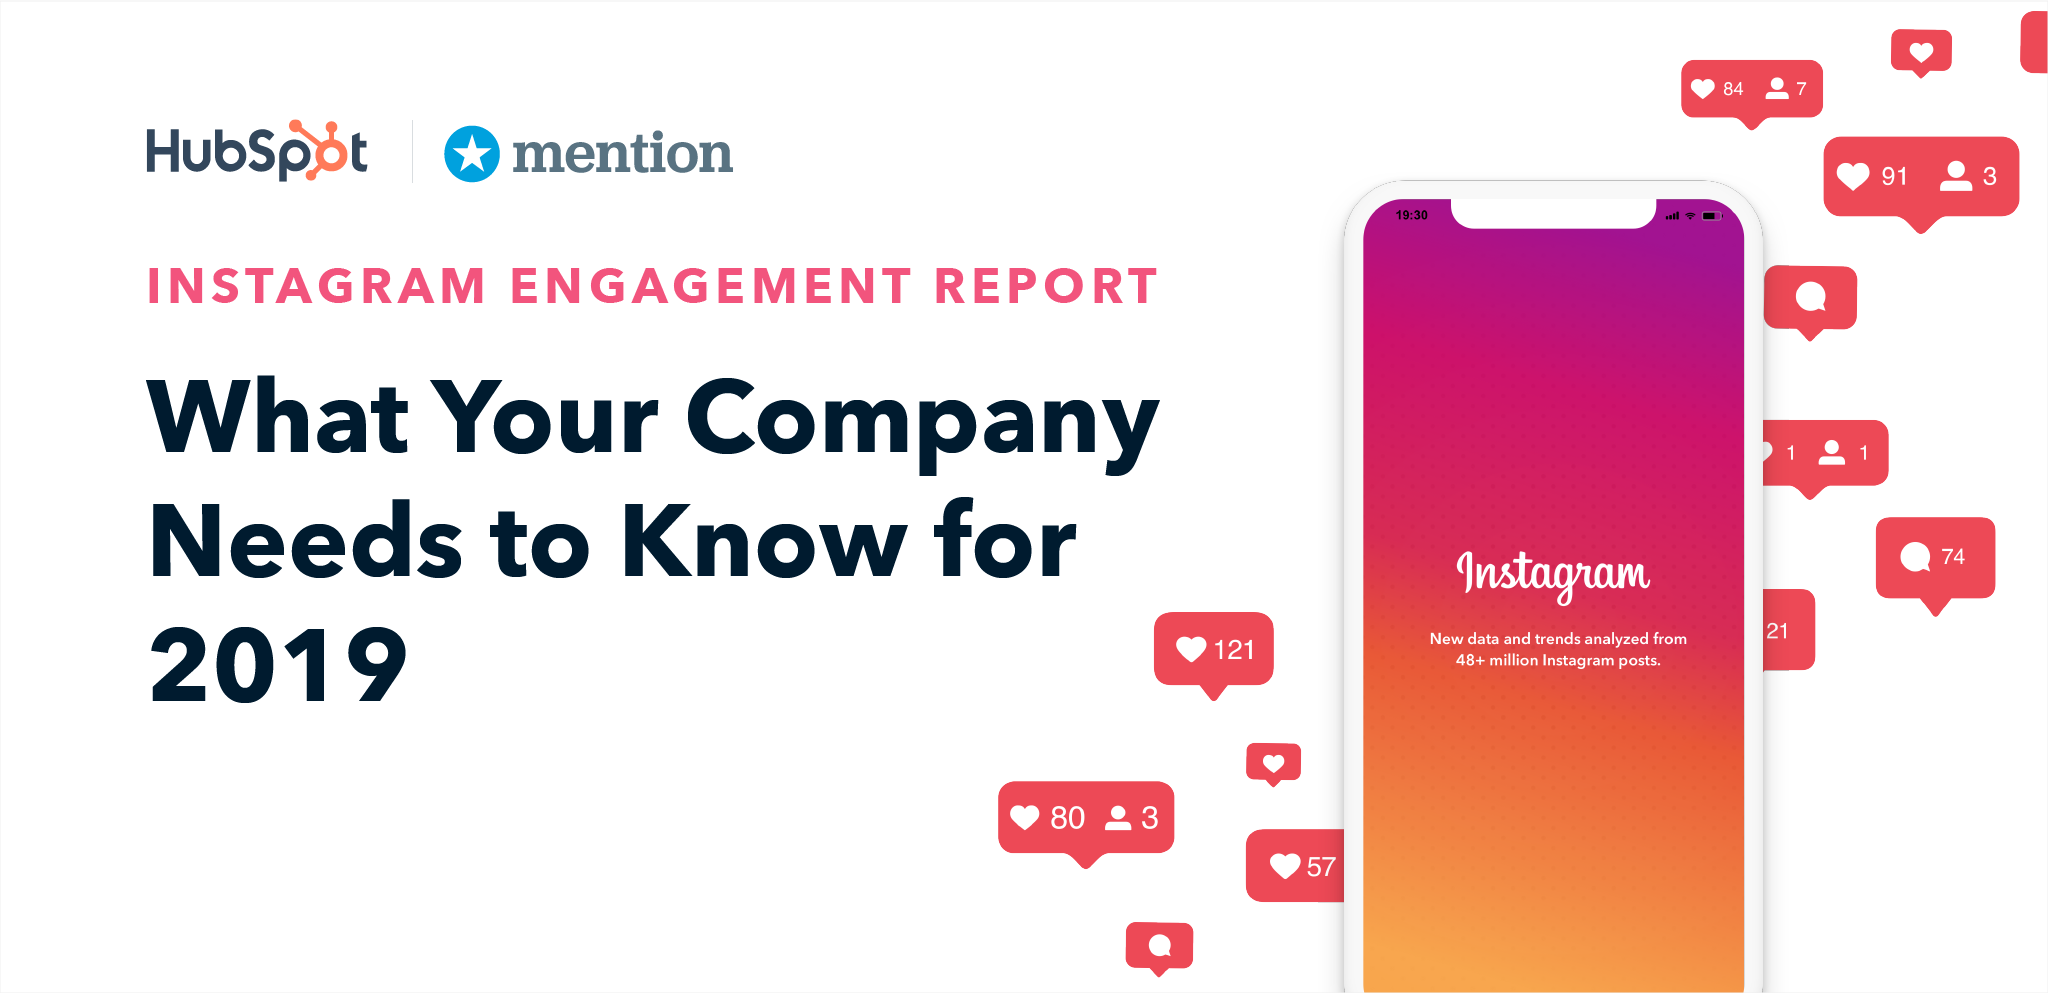 What Your Company Needs to Know for 2019